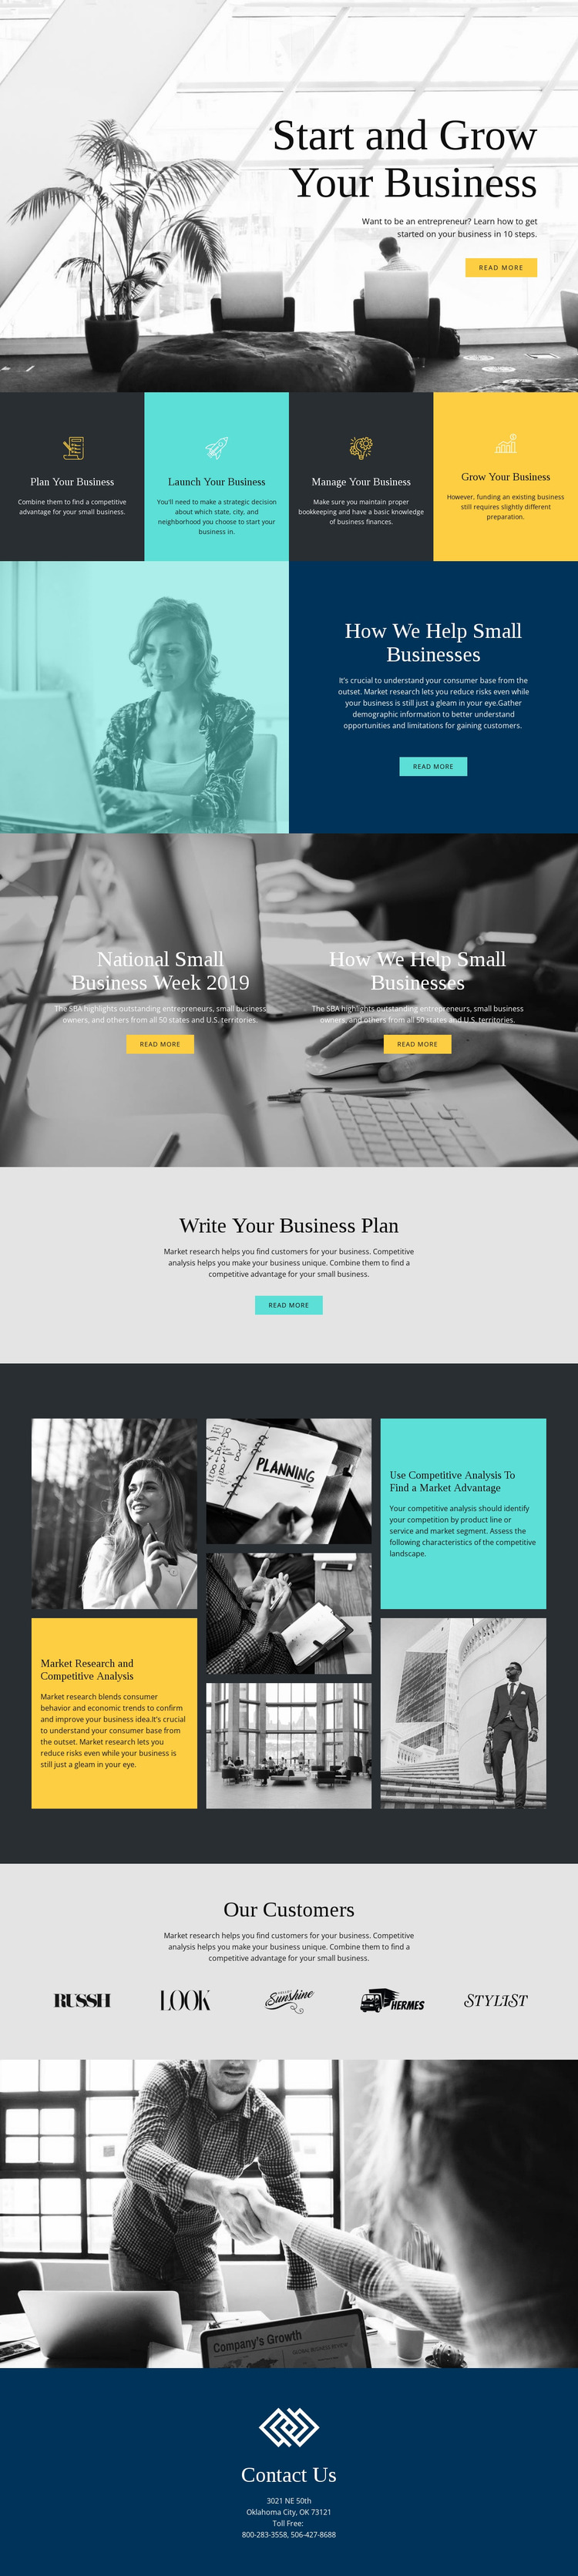 Start and grow your business Website Mockup